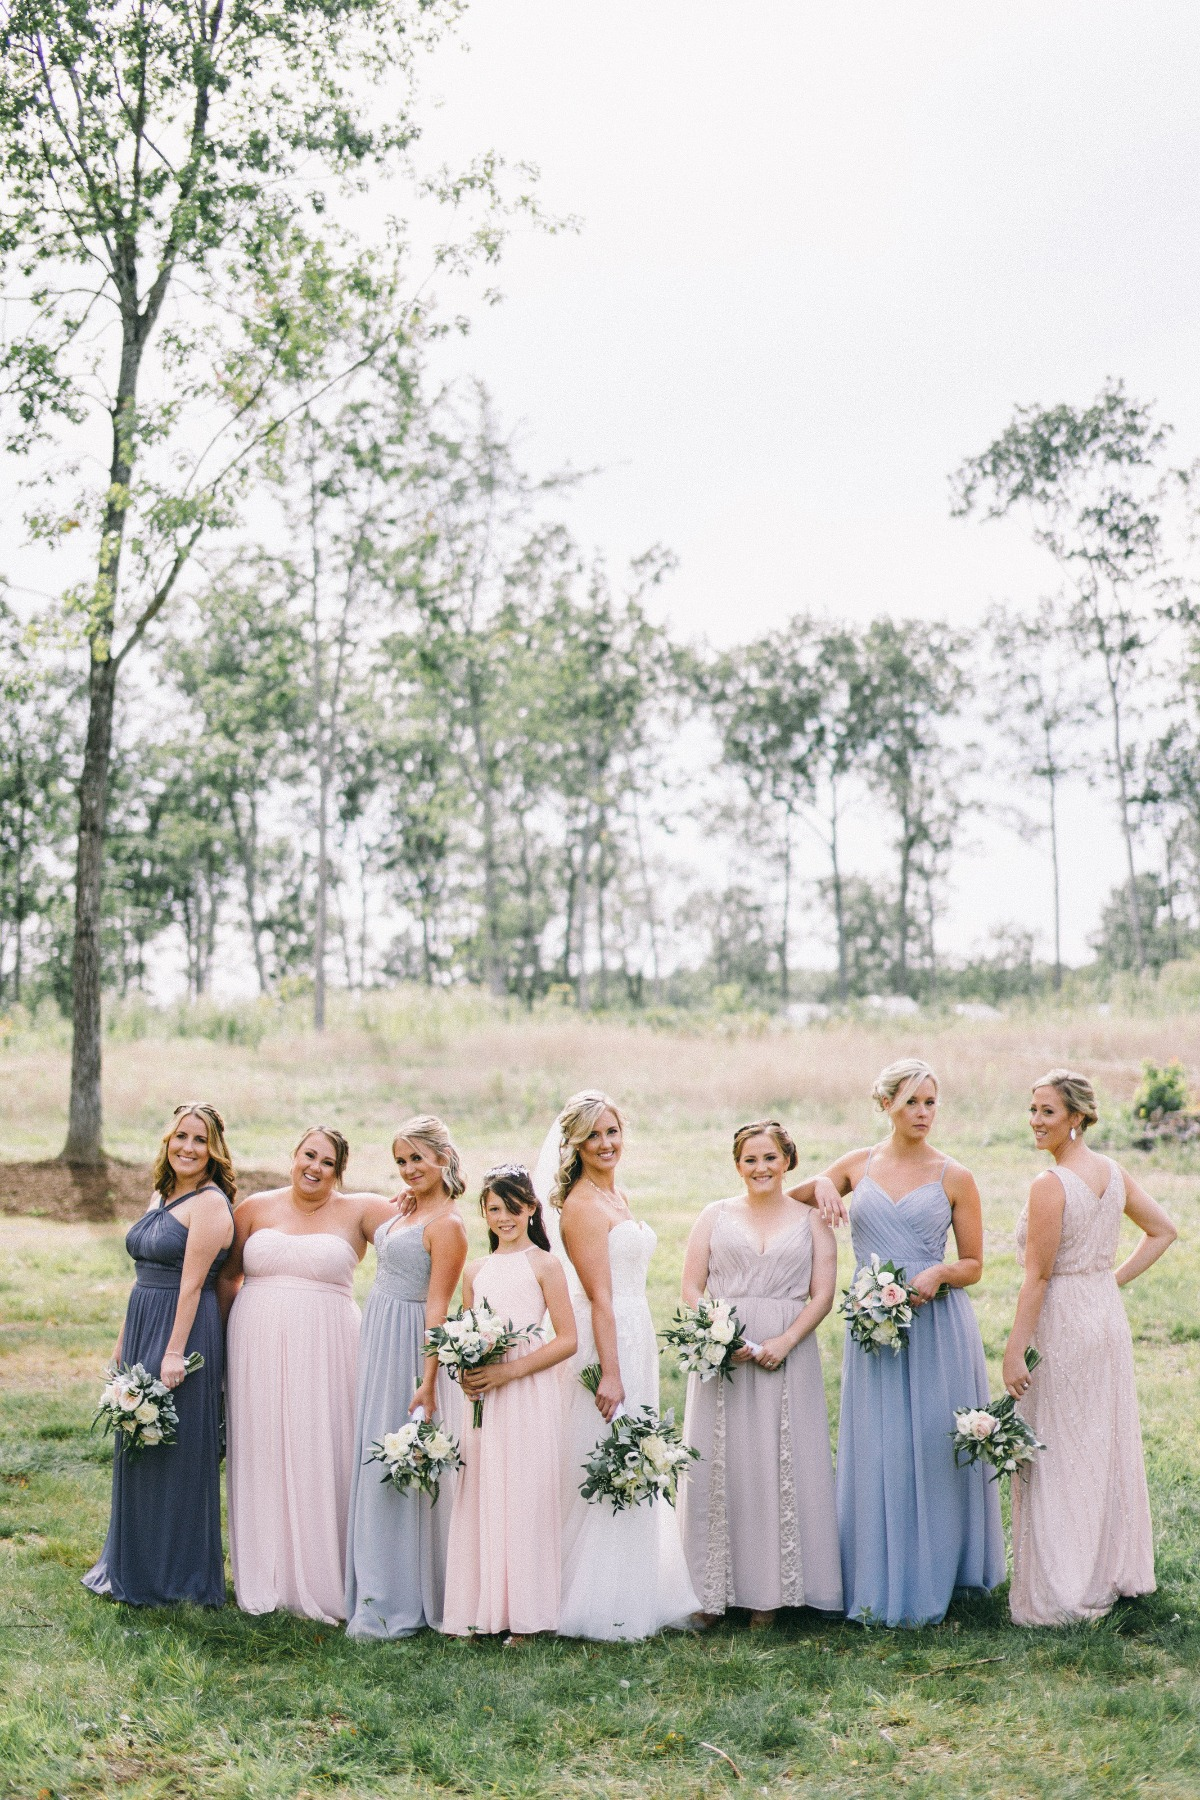 Mismatched bridesmaid dresses for a farm wedding